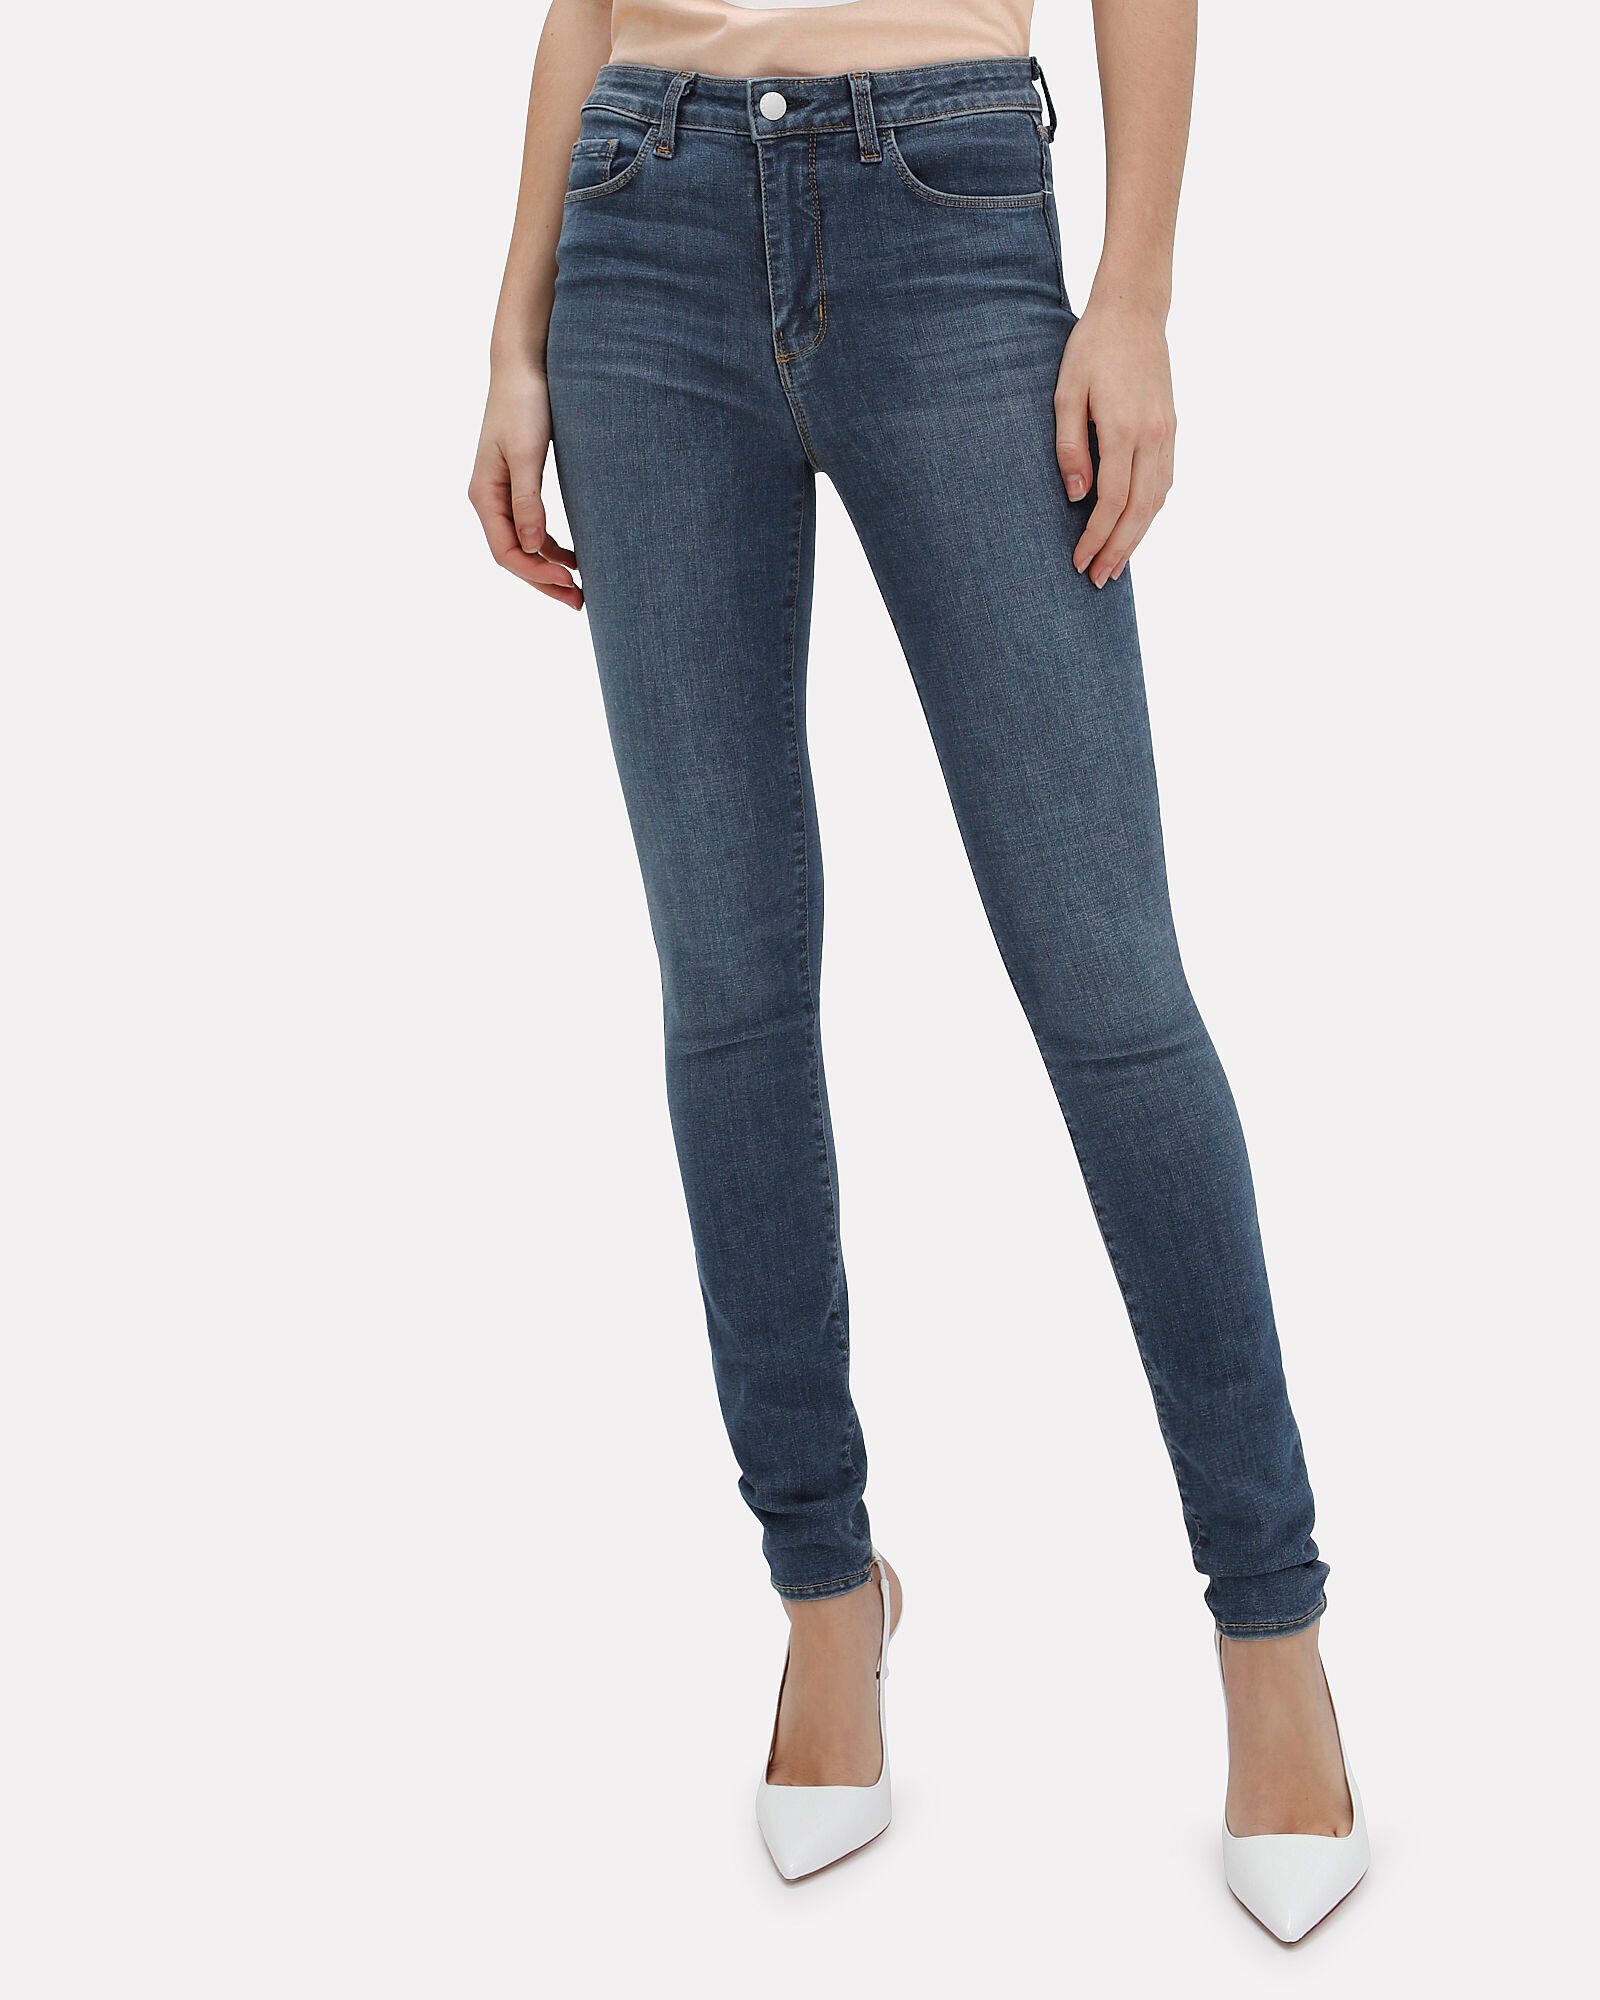 Marguerite Jeans, DARK DENIM, hi-res